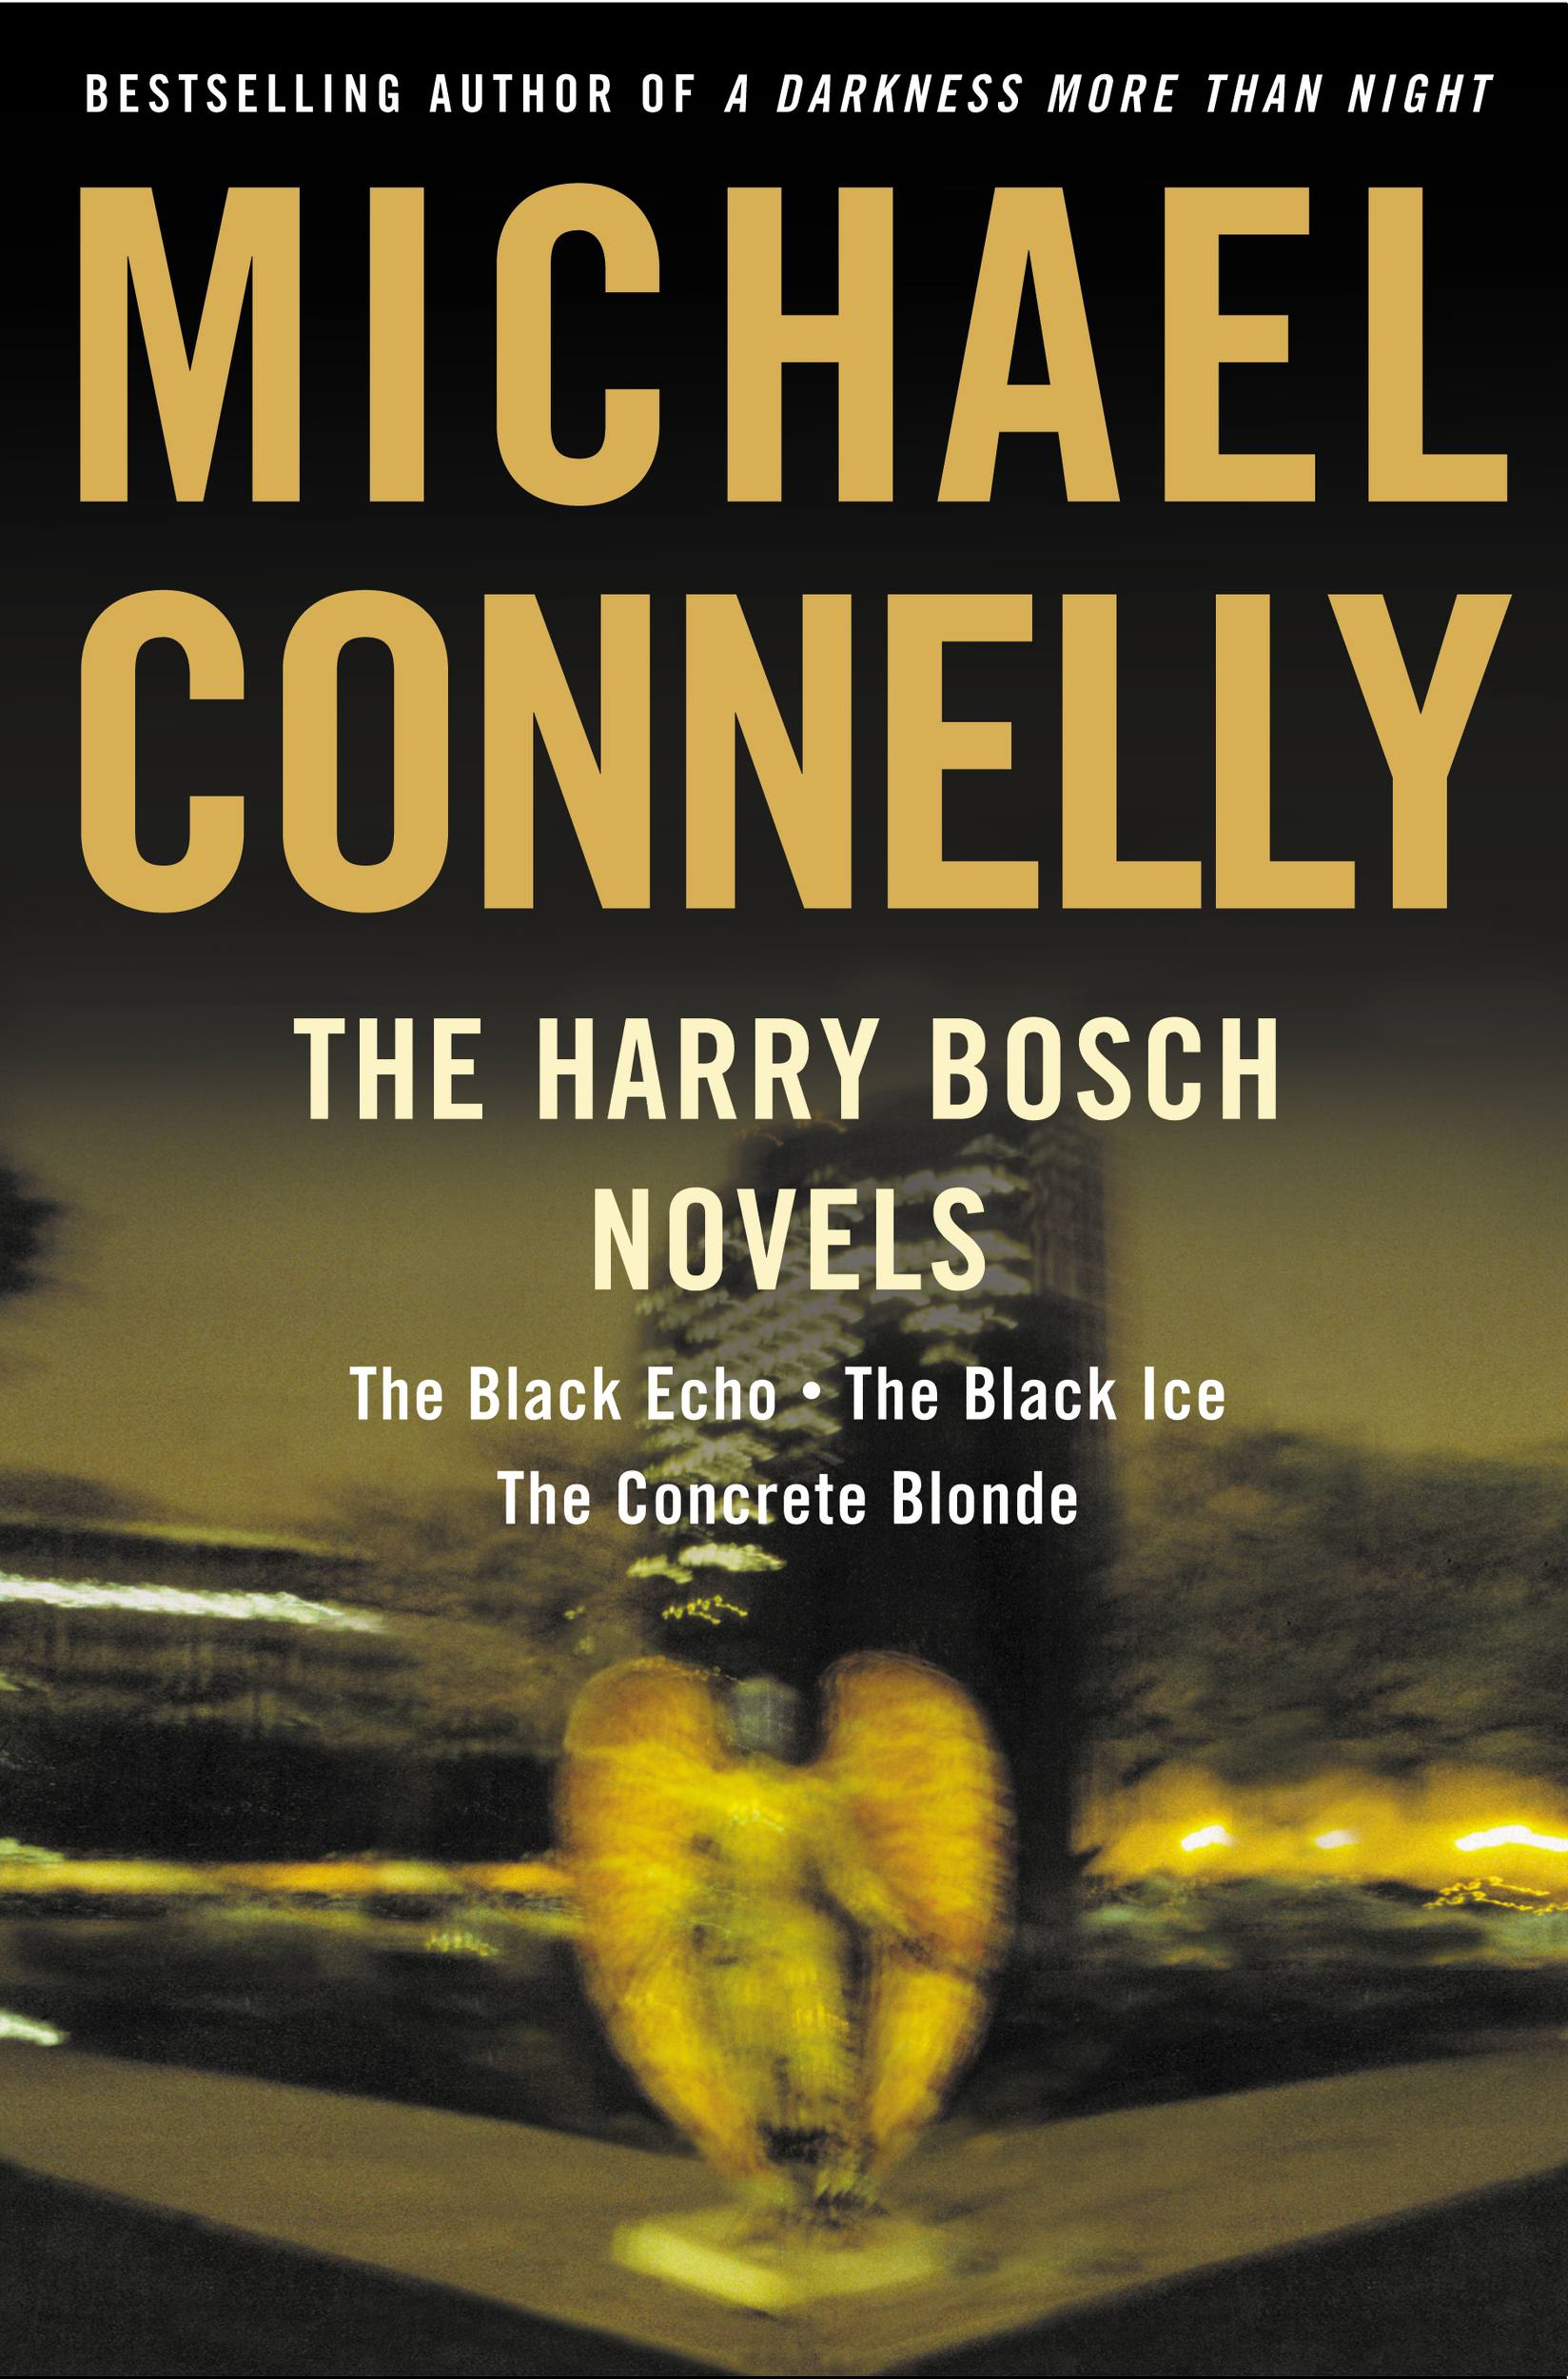 The Harry Bosch Novels By: Michael Connelly